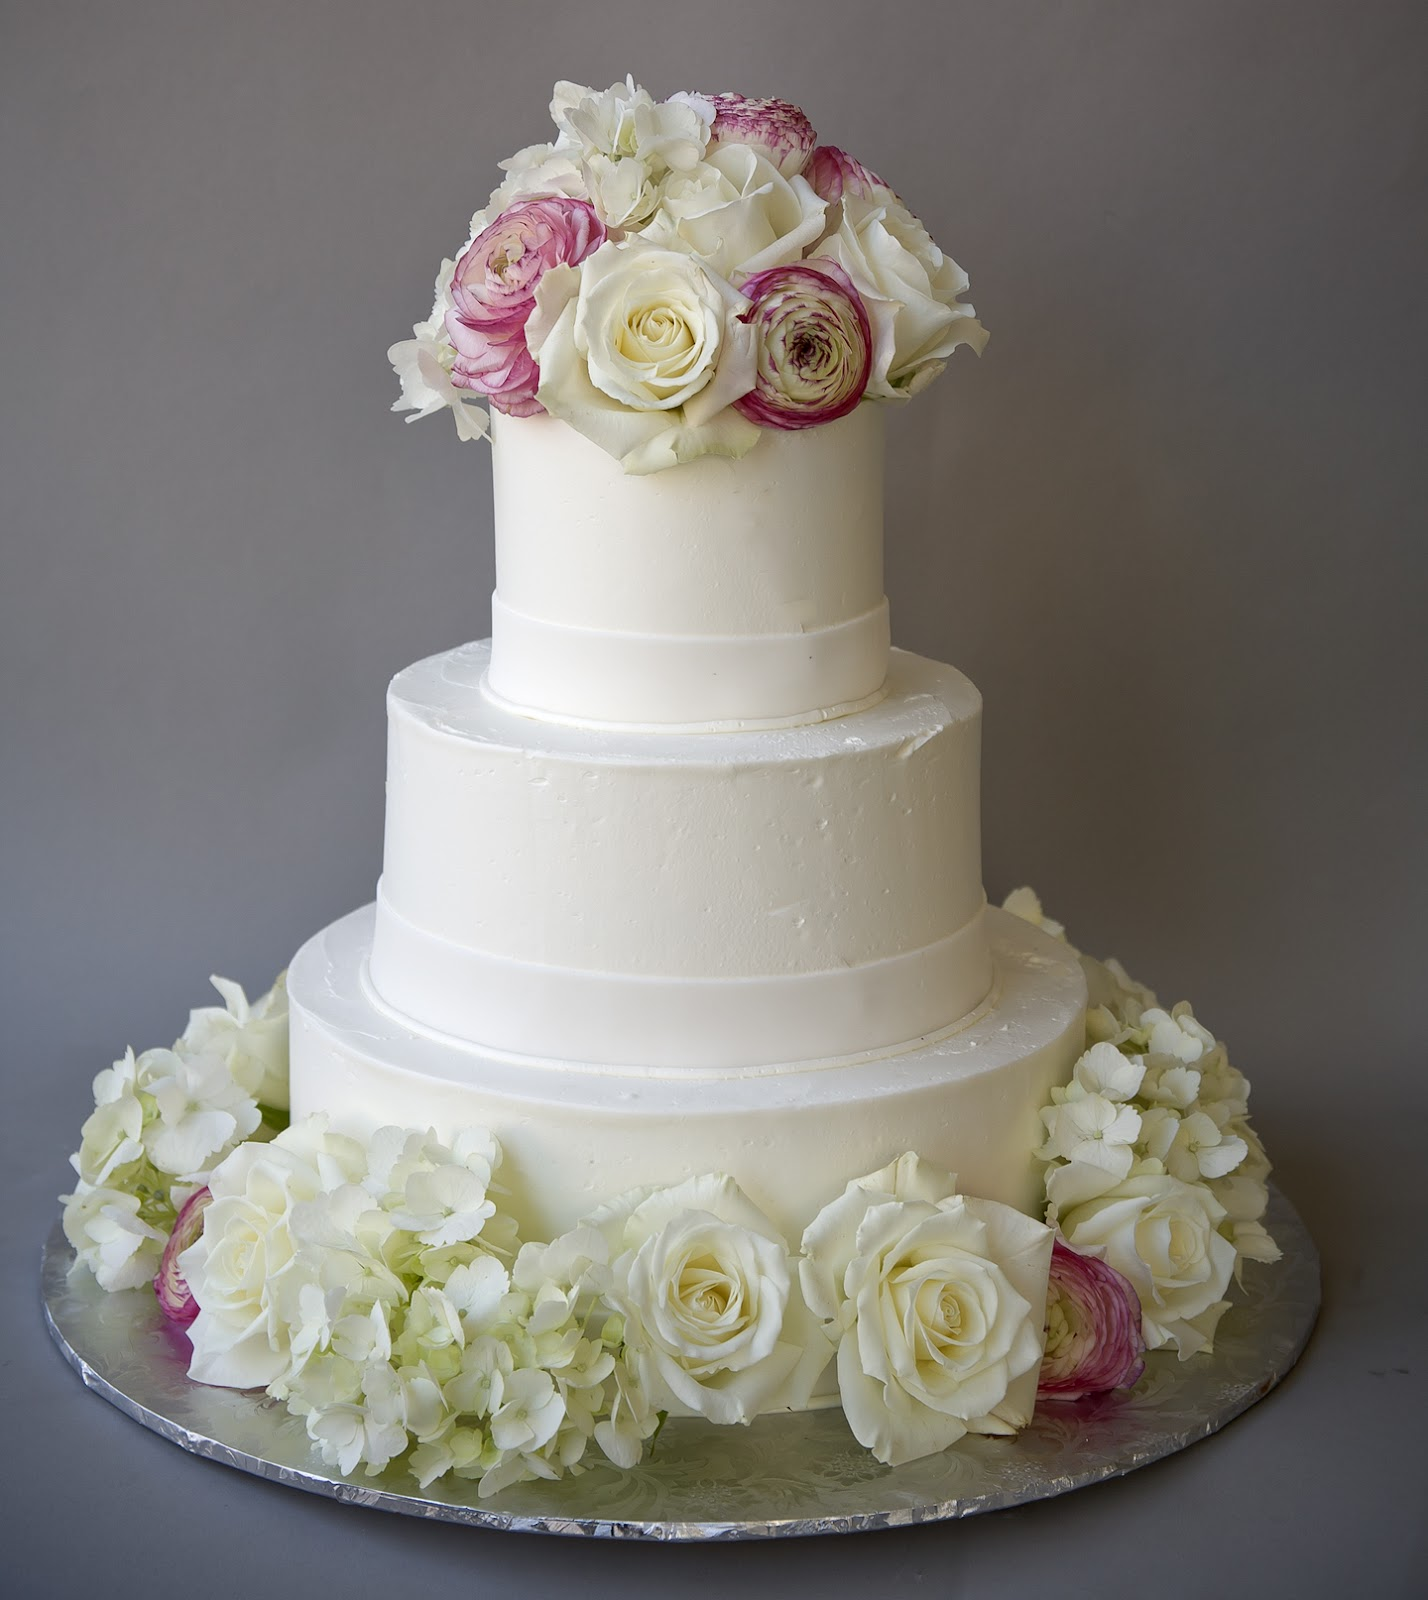 A Simple Cake Fresh Flowers For Wedding Cakes